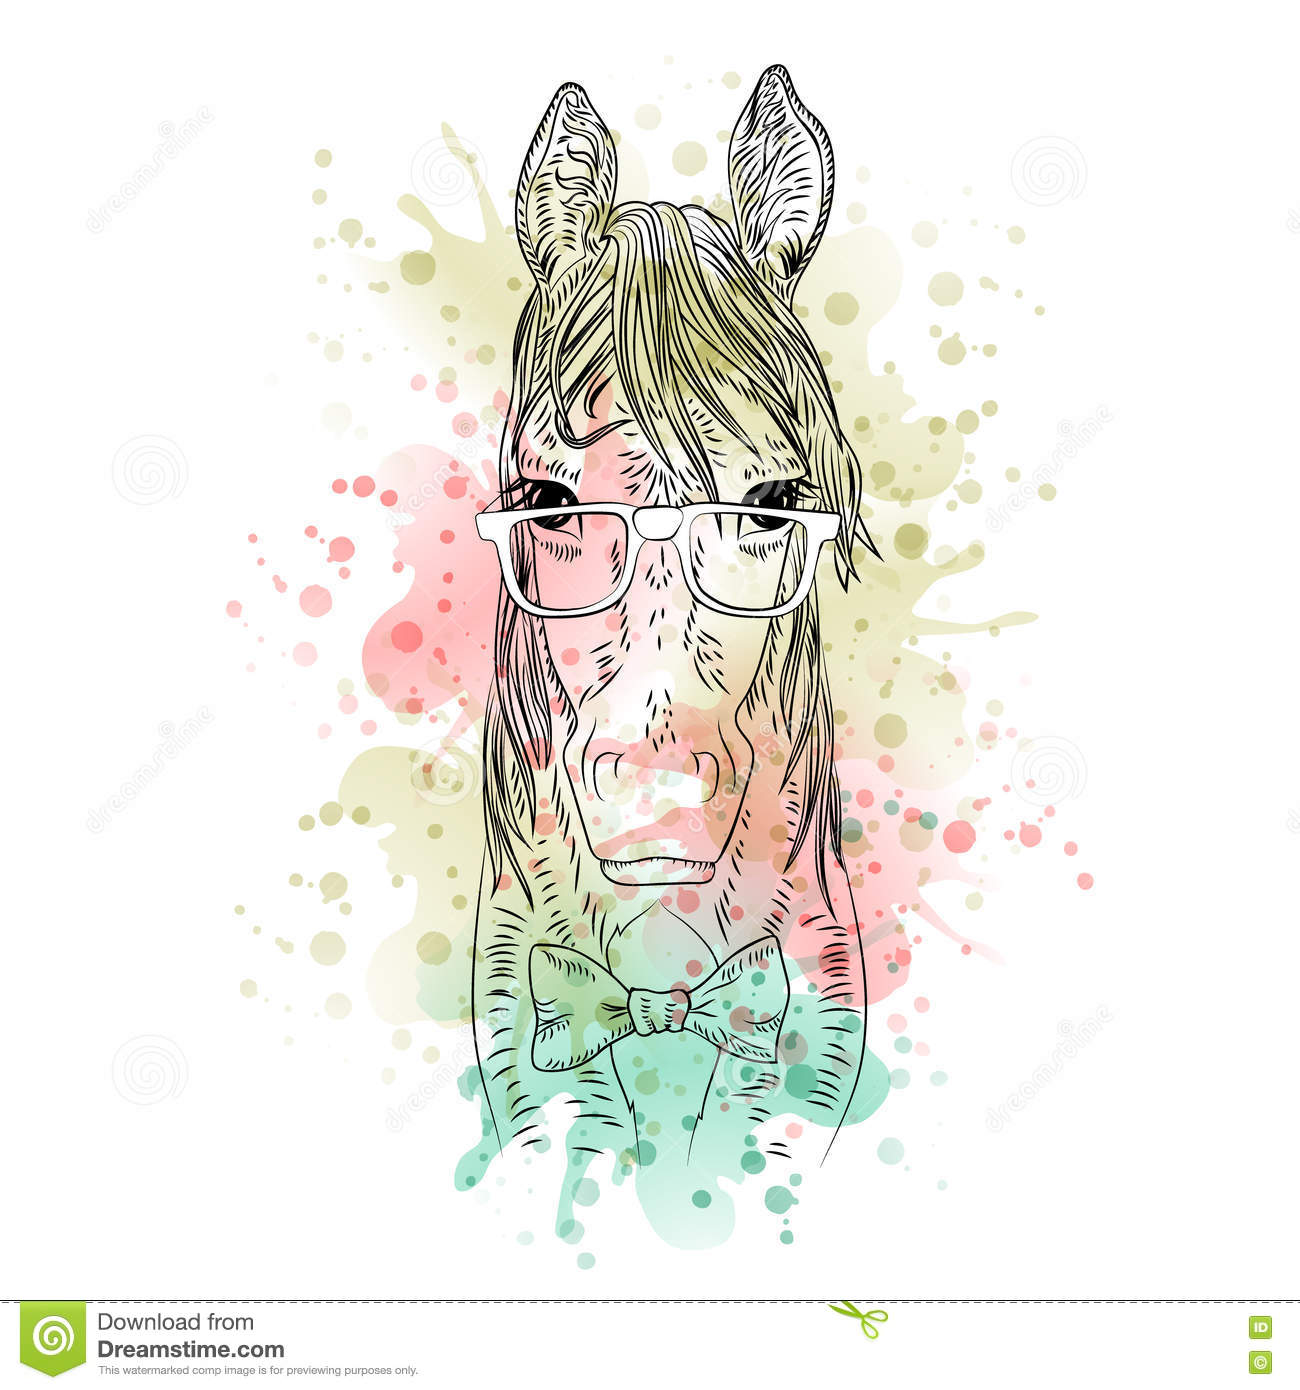 Black And White Animal Horse Head Watercolor Abstract Art